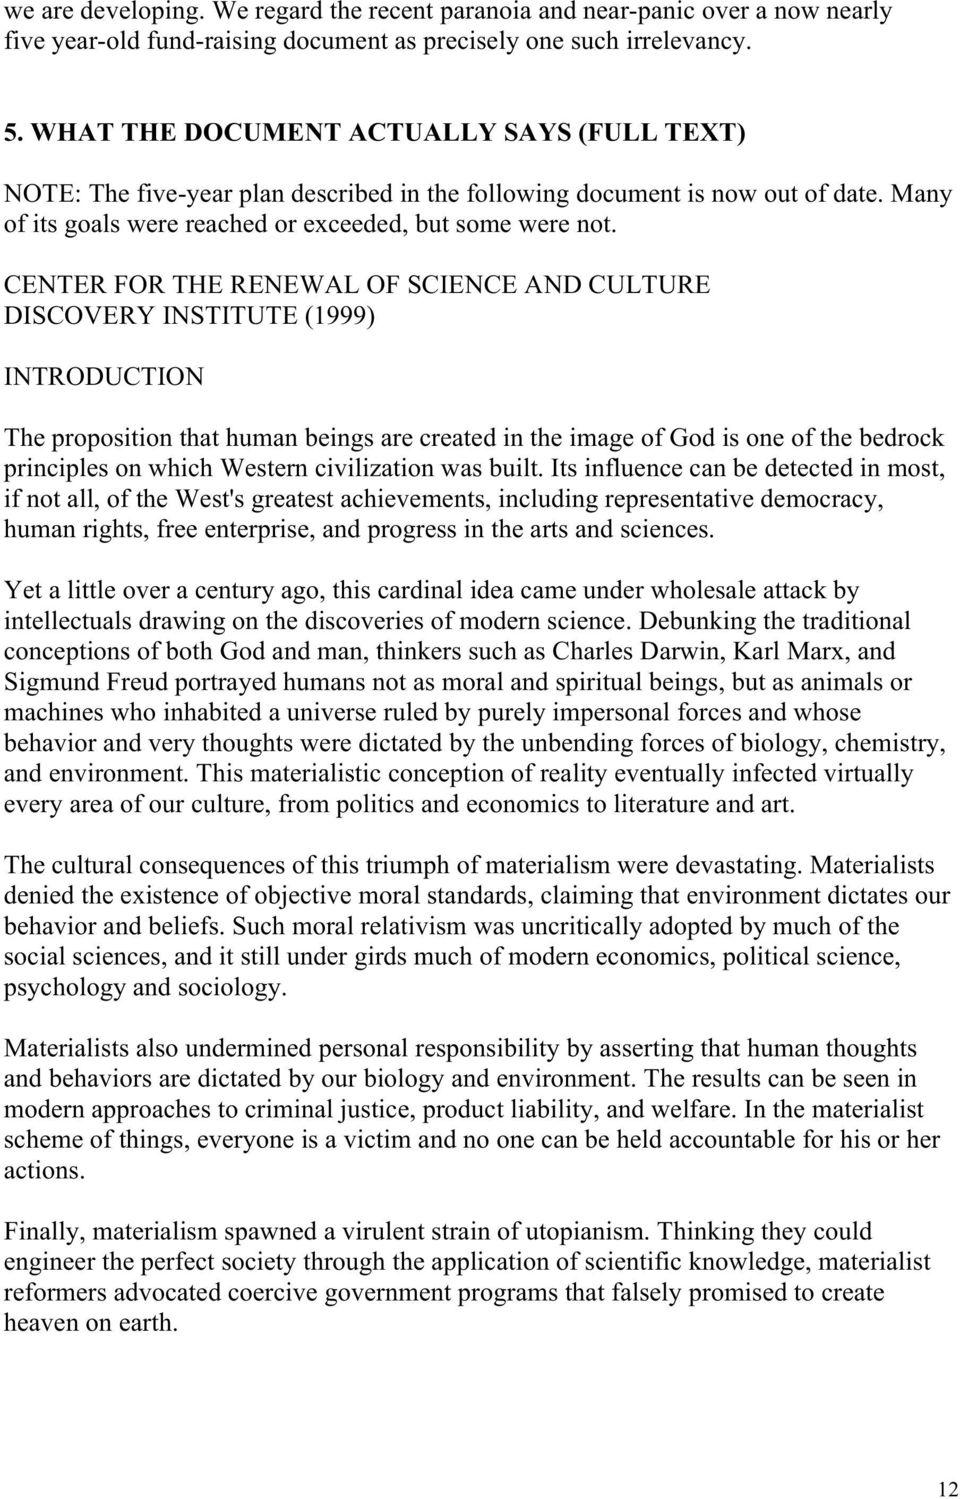 CENTER FOR THE RENEWAL OF SCIENCE AND CULTURE DISCOVERY INSTITUTE (1999) INTRODUCTION The proposition that human beings are created in the image of God is one of the bedrock principles on which